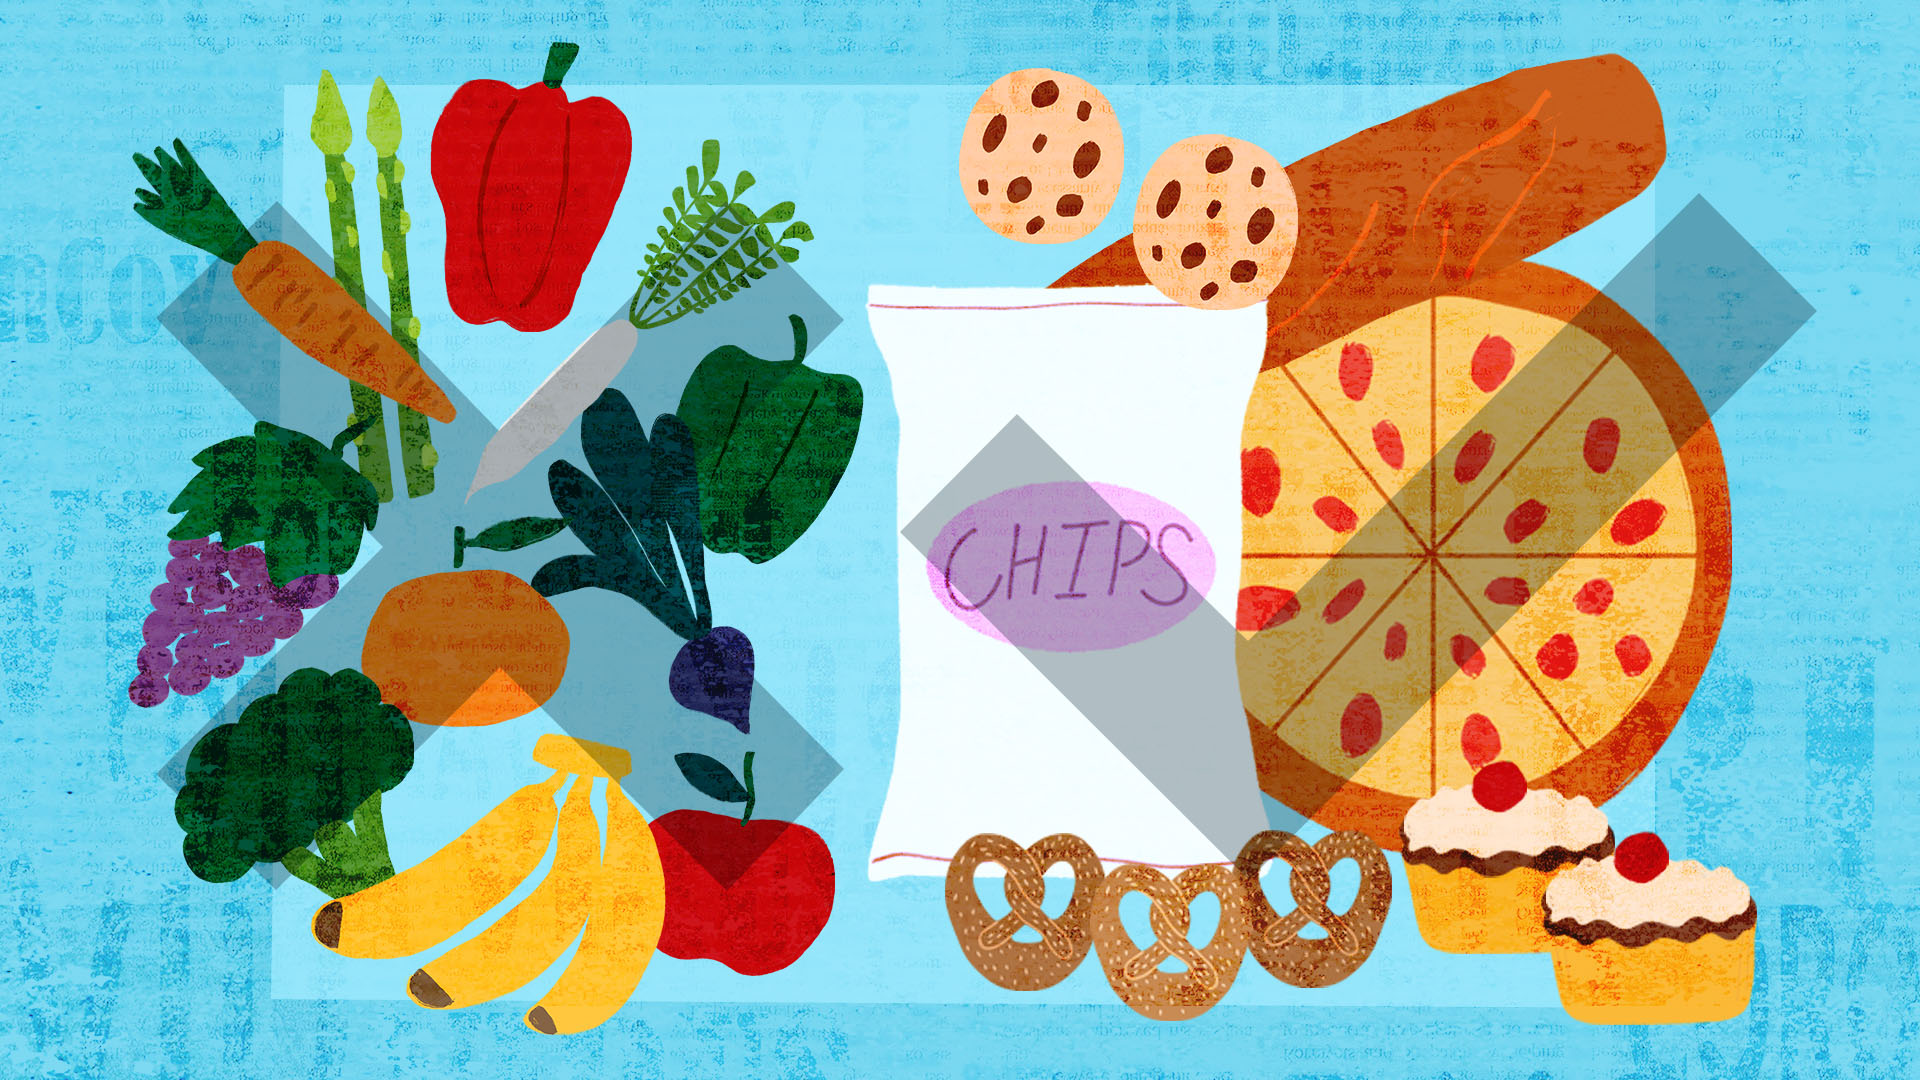 illustration of various foods on blue background